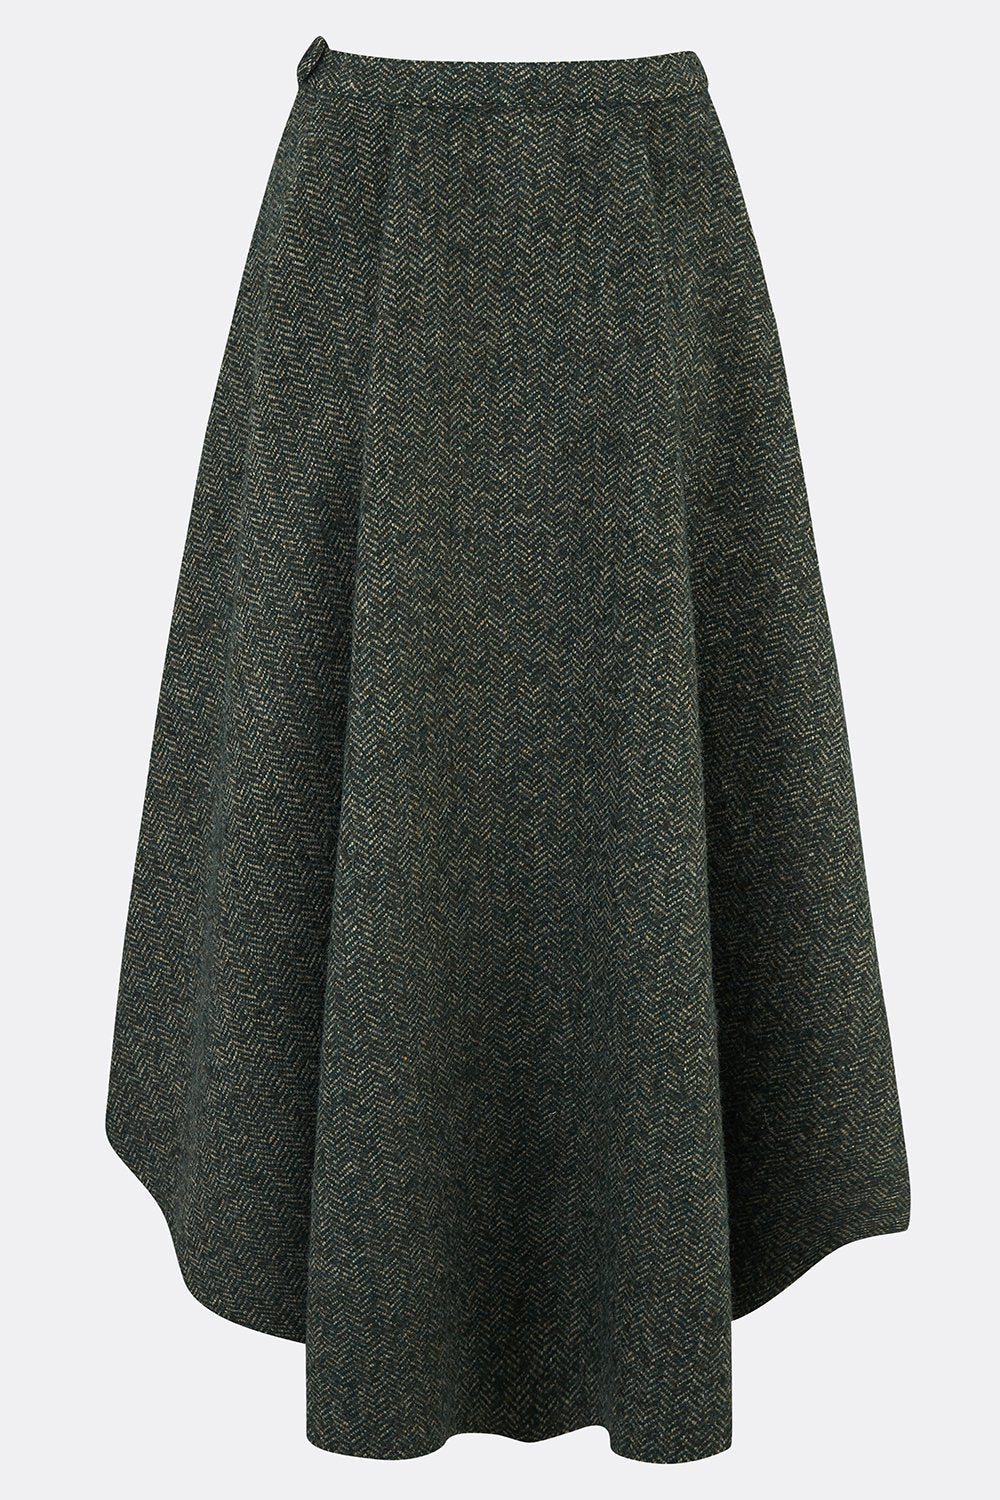 ROXANA SKIRT IN HERRINGBONE TWEED-womenswear-A Child Of The Jago